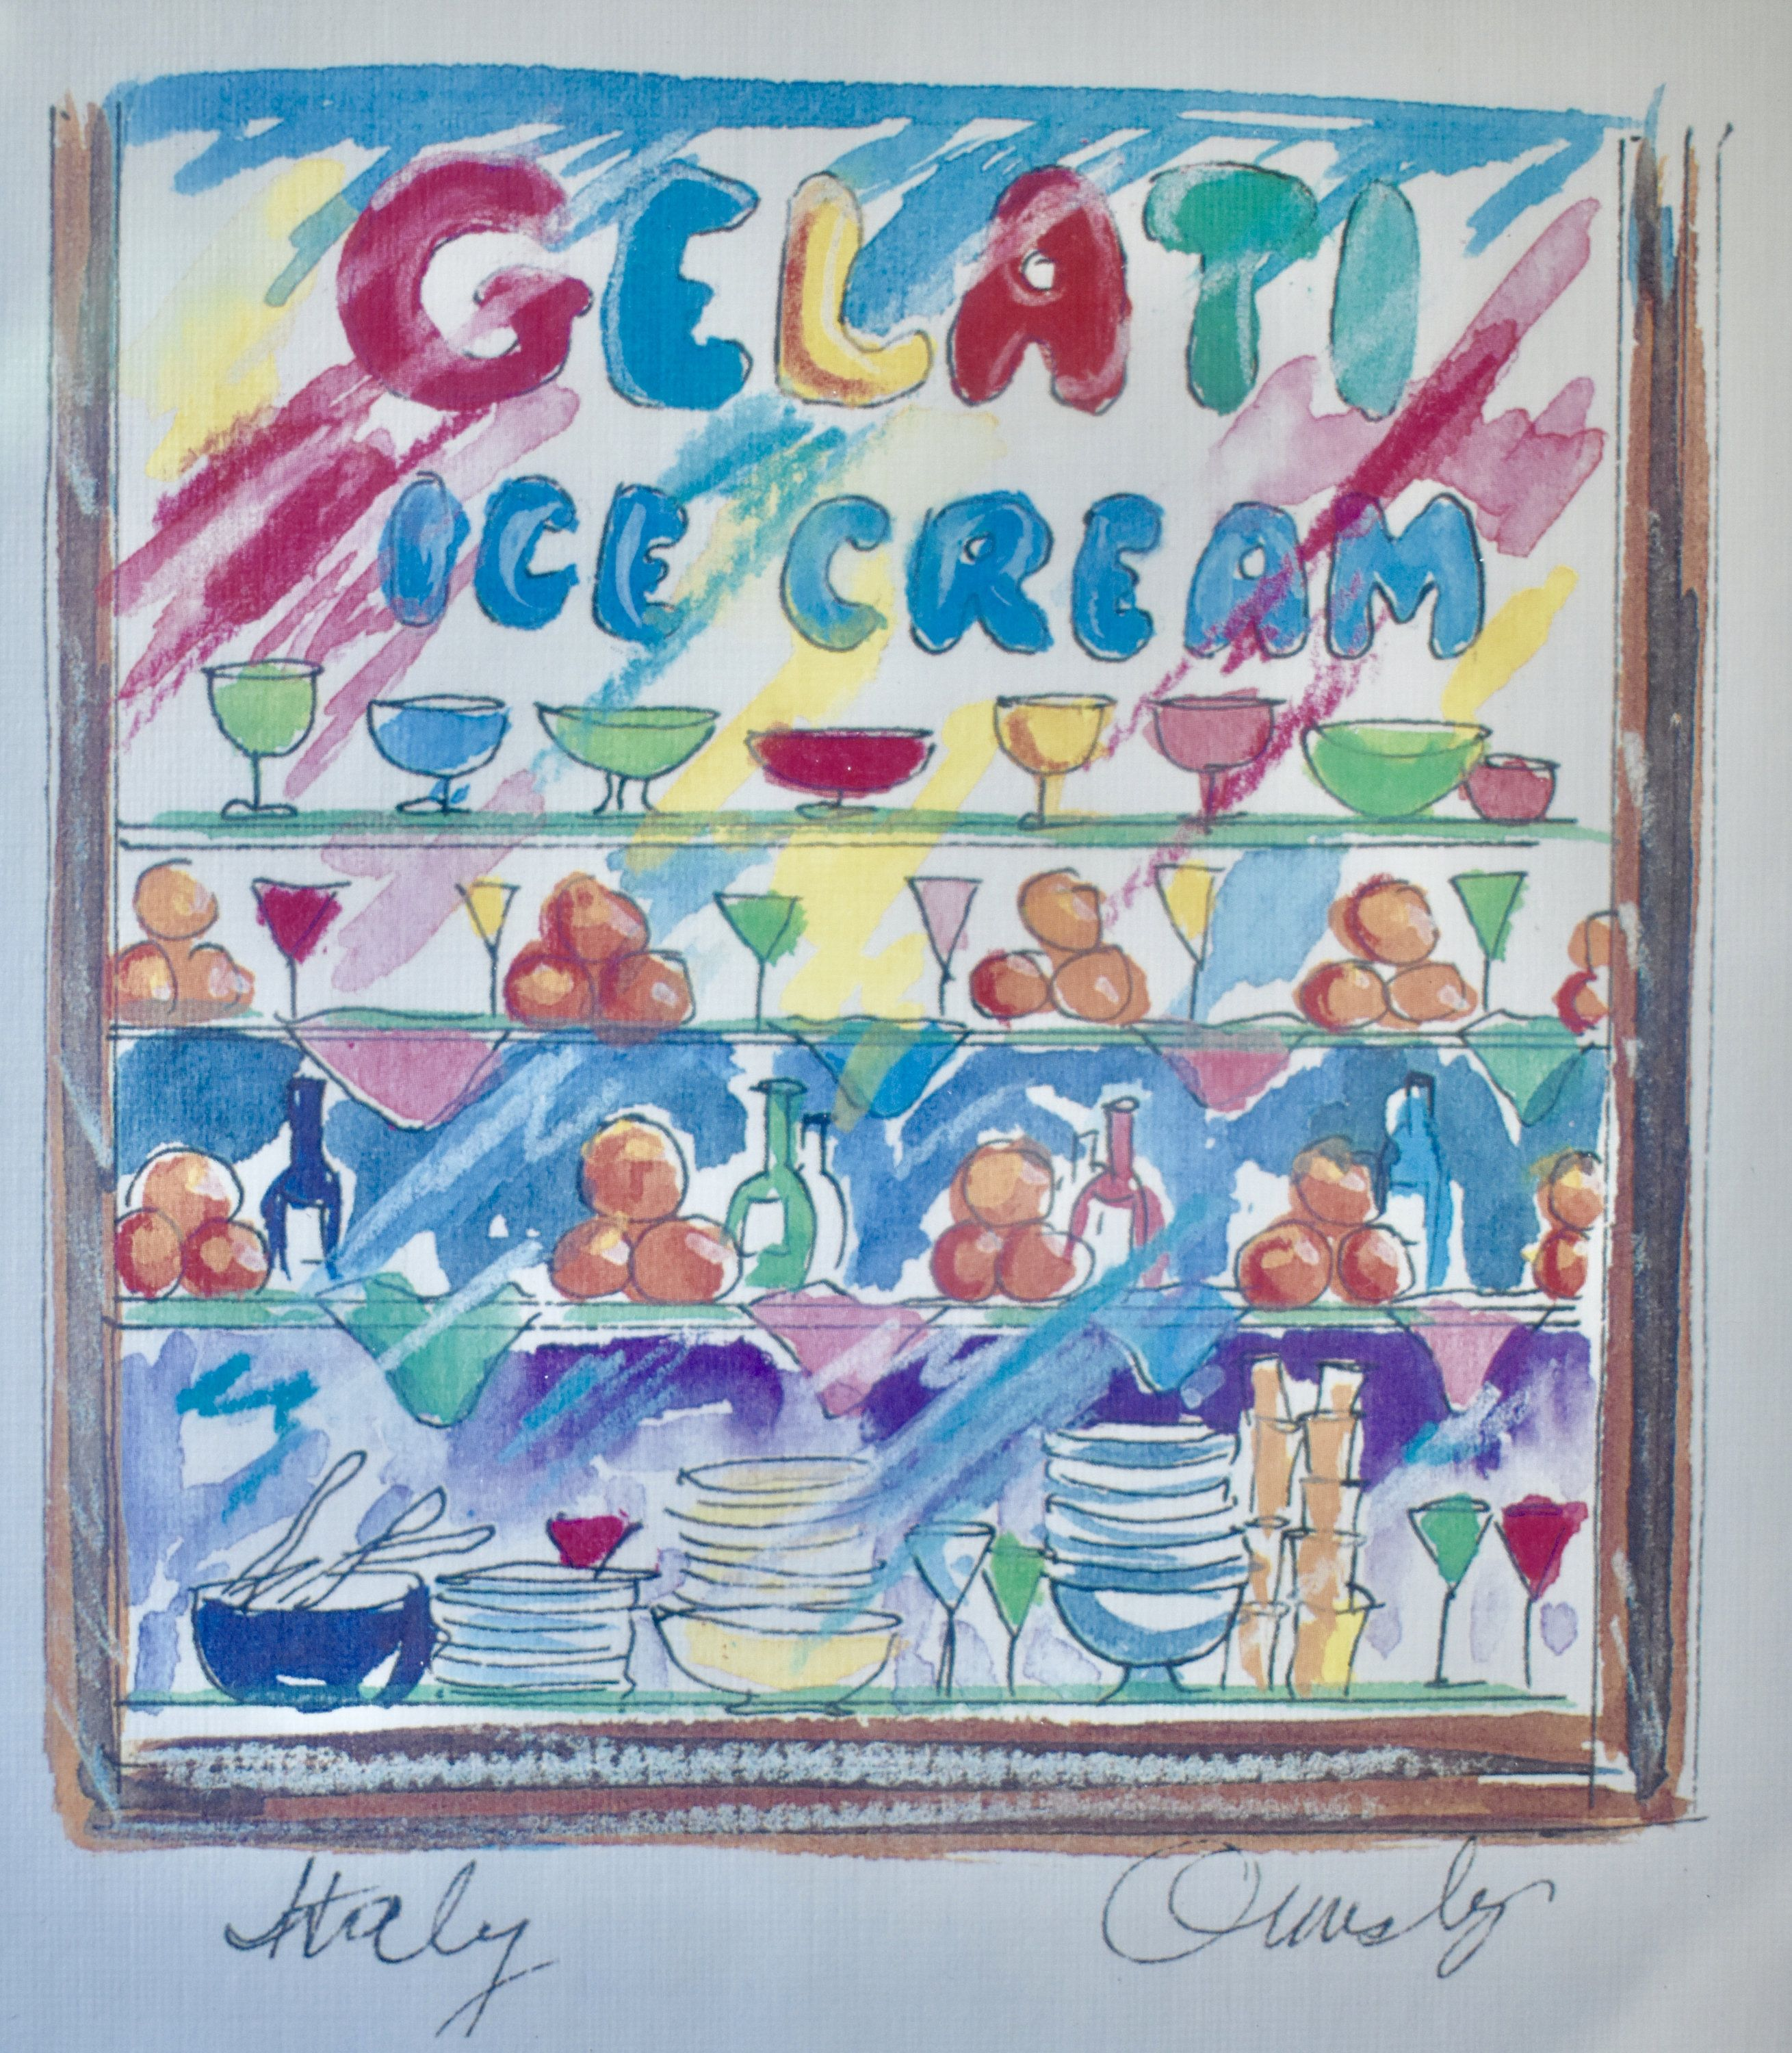 Vintage anne ormsby signed framed art print lithograph gelato ice